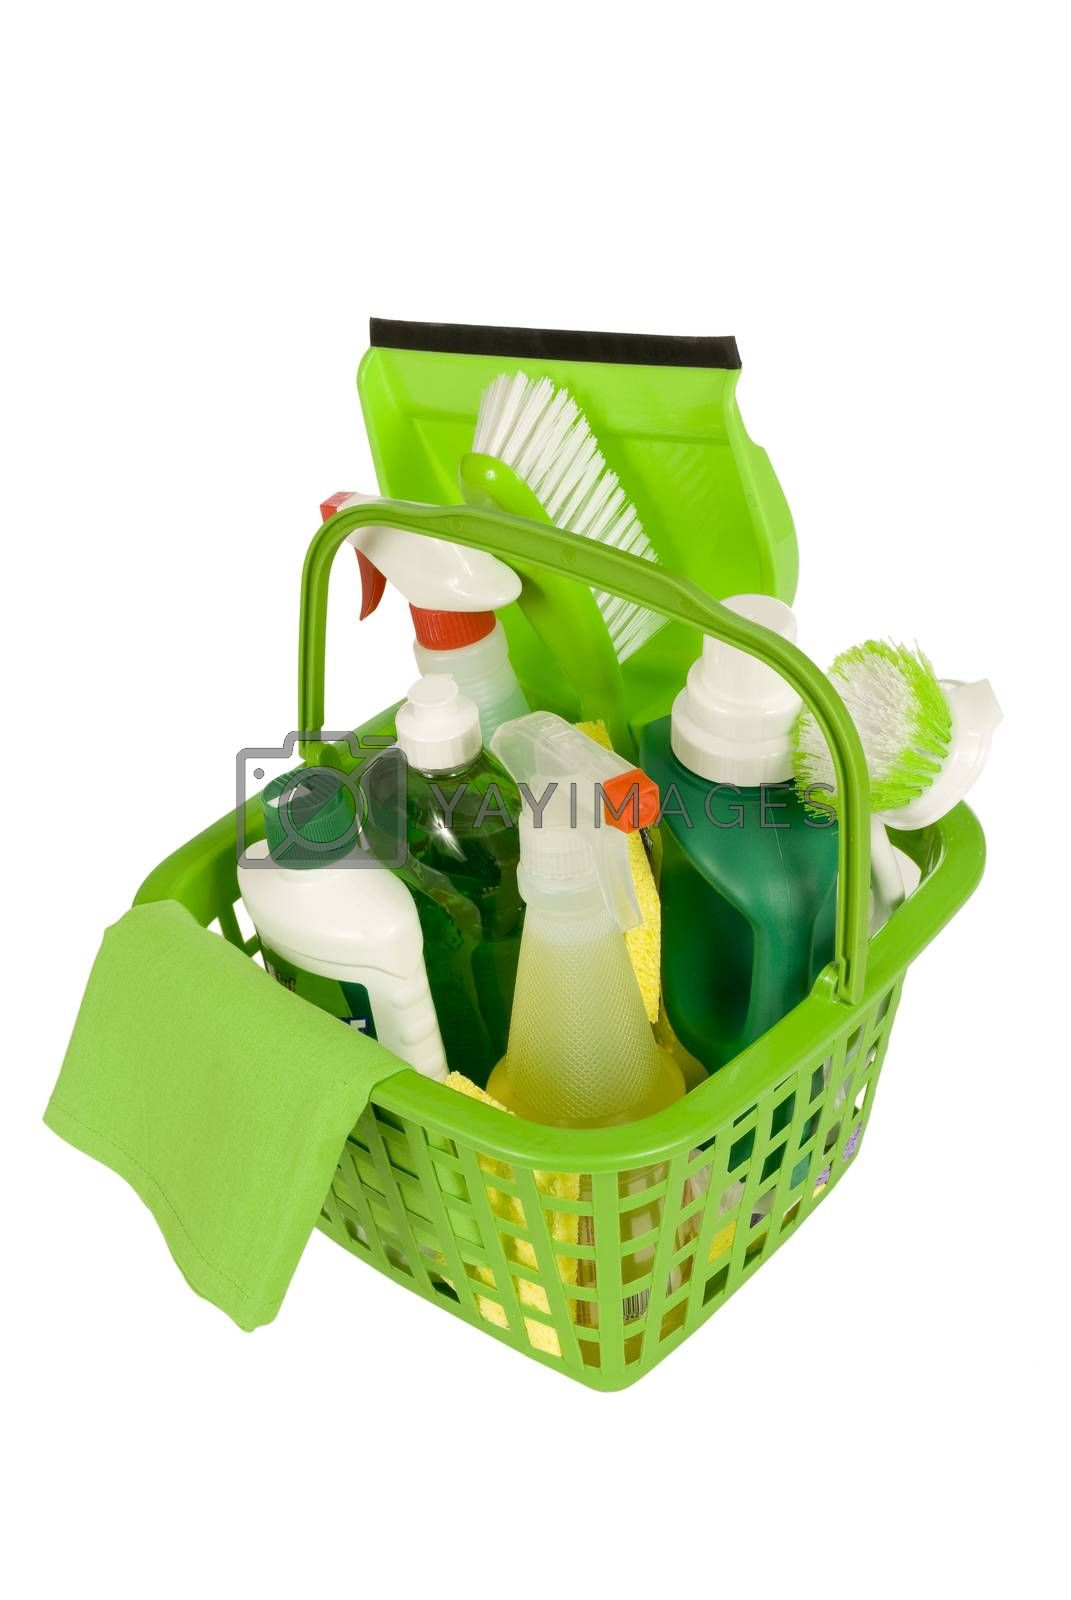 Environmentally safe green cleaning supplies.  Isolated on white.